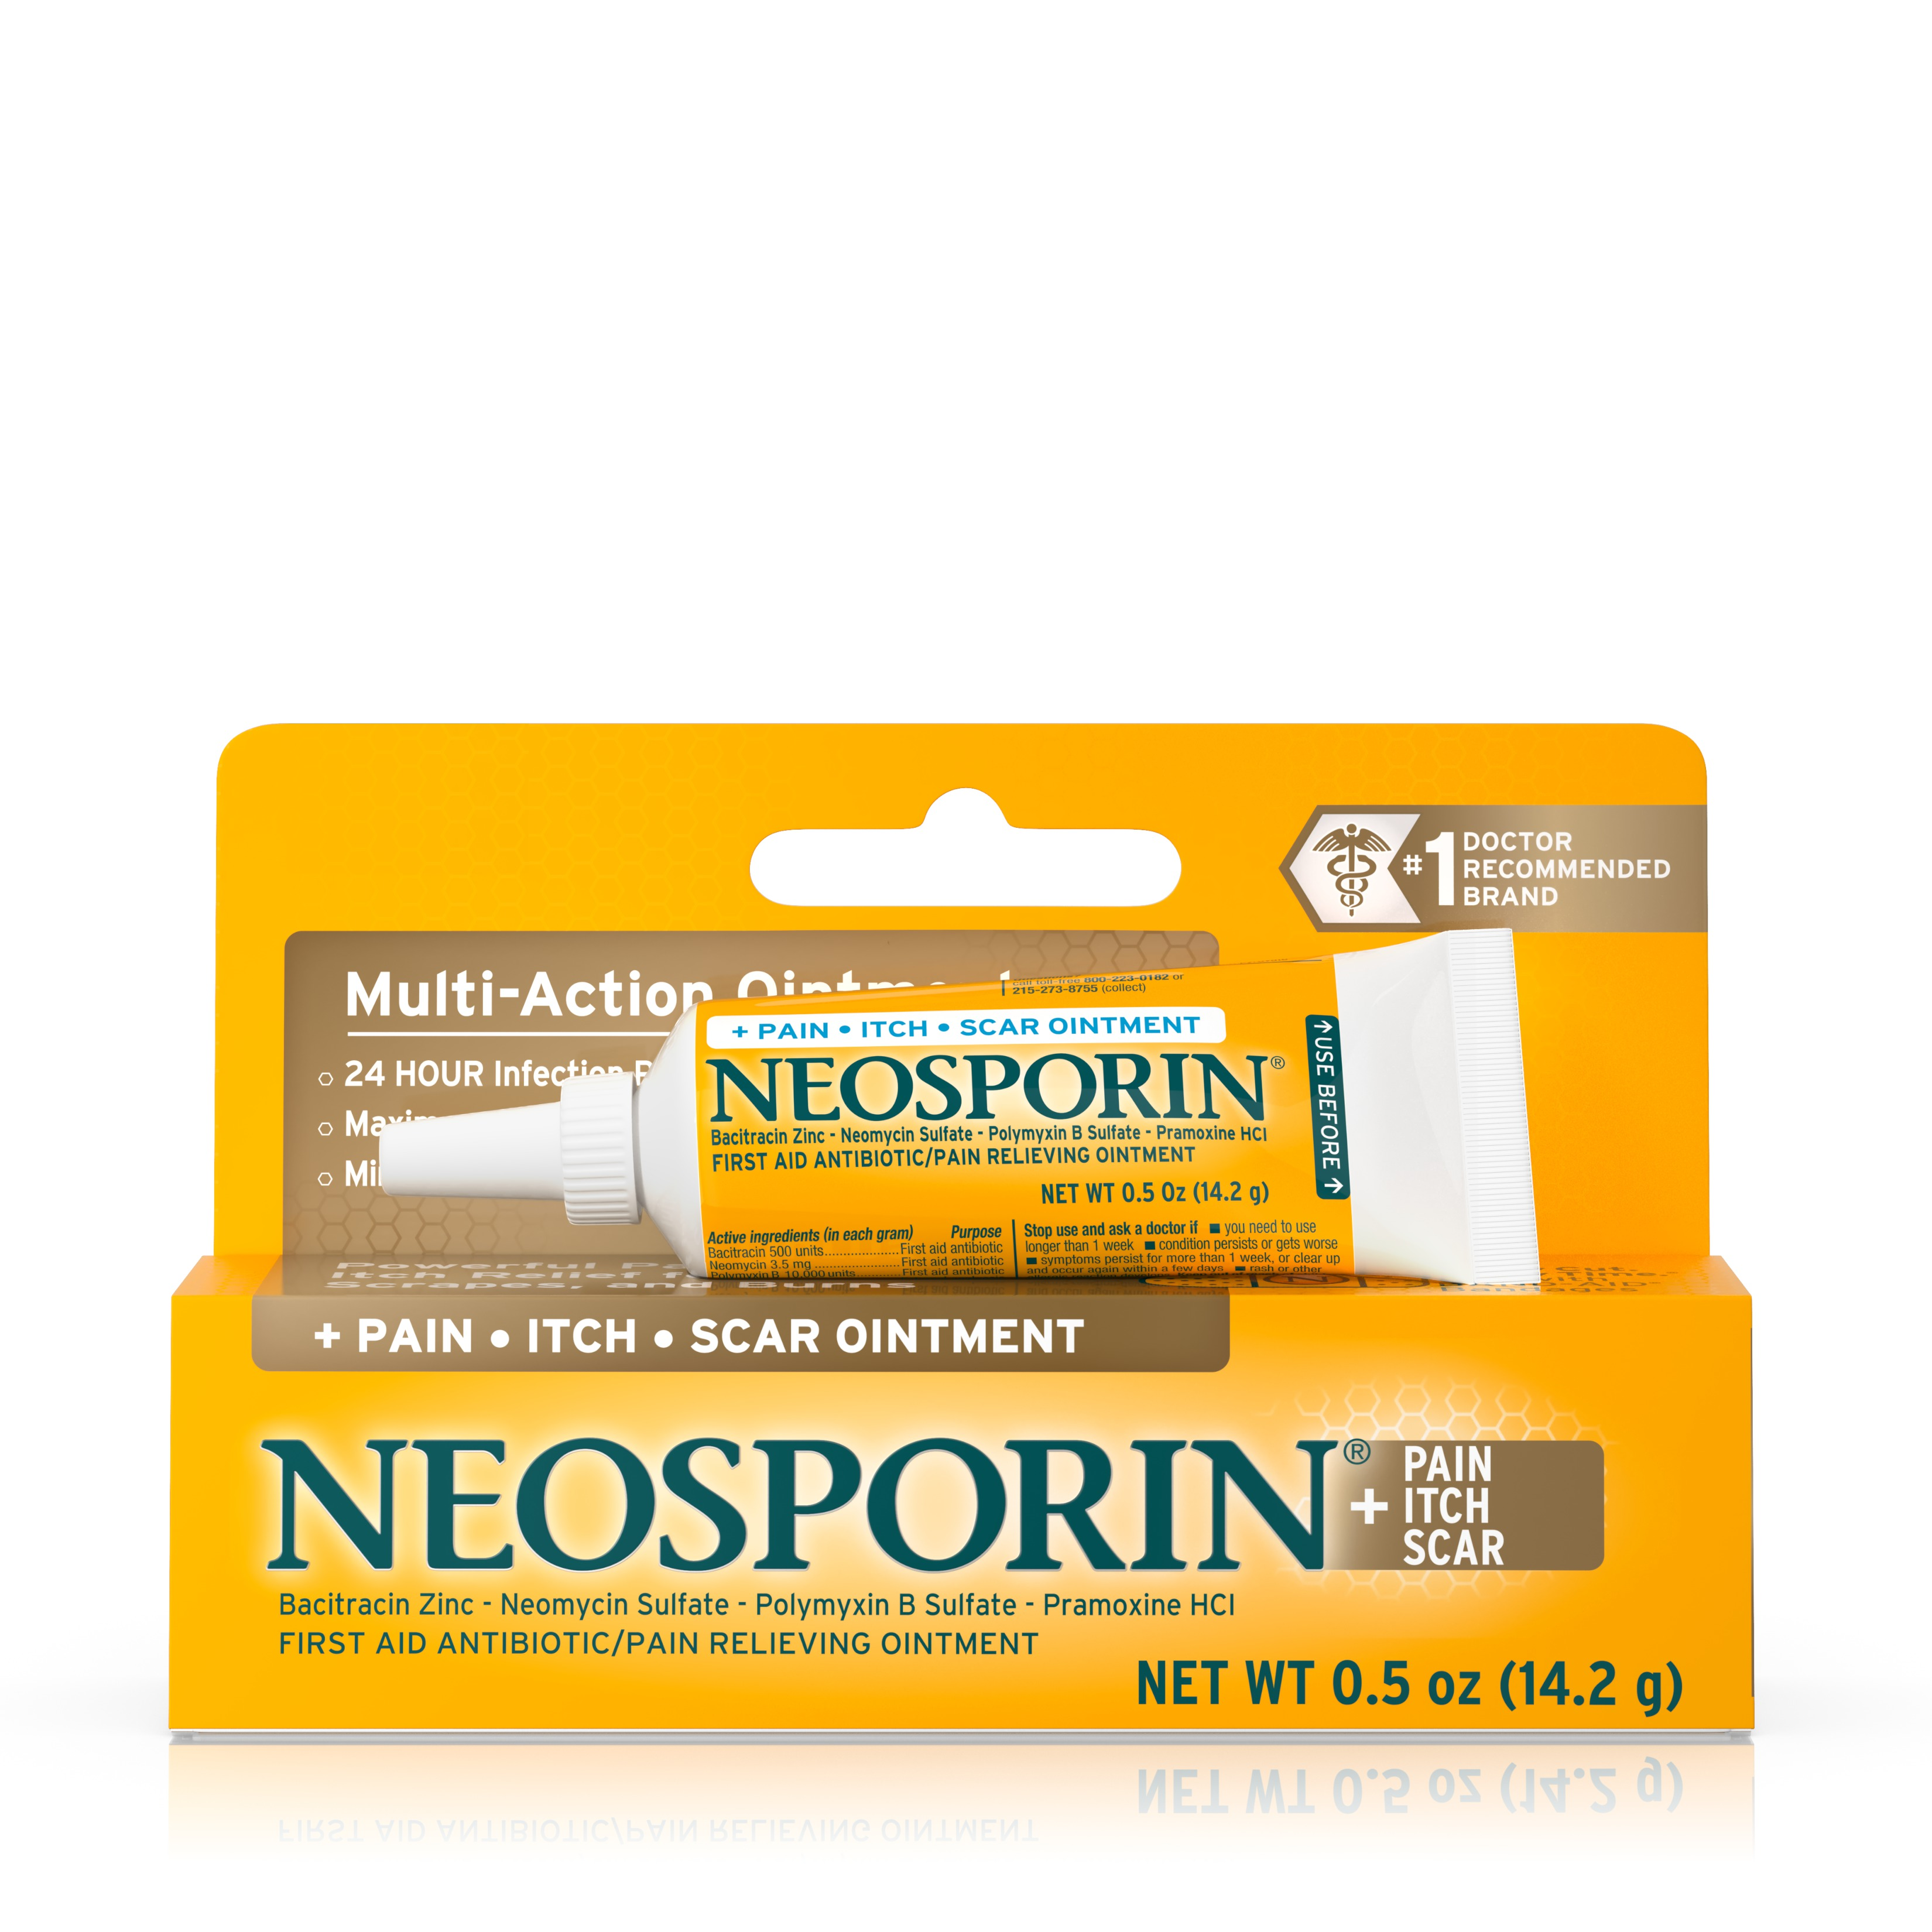 Neosporin + Pain, Itch, Scar Antibiotic Ointment, .5 Oz